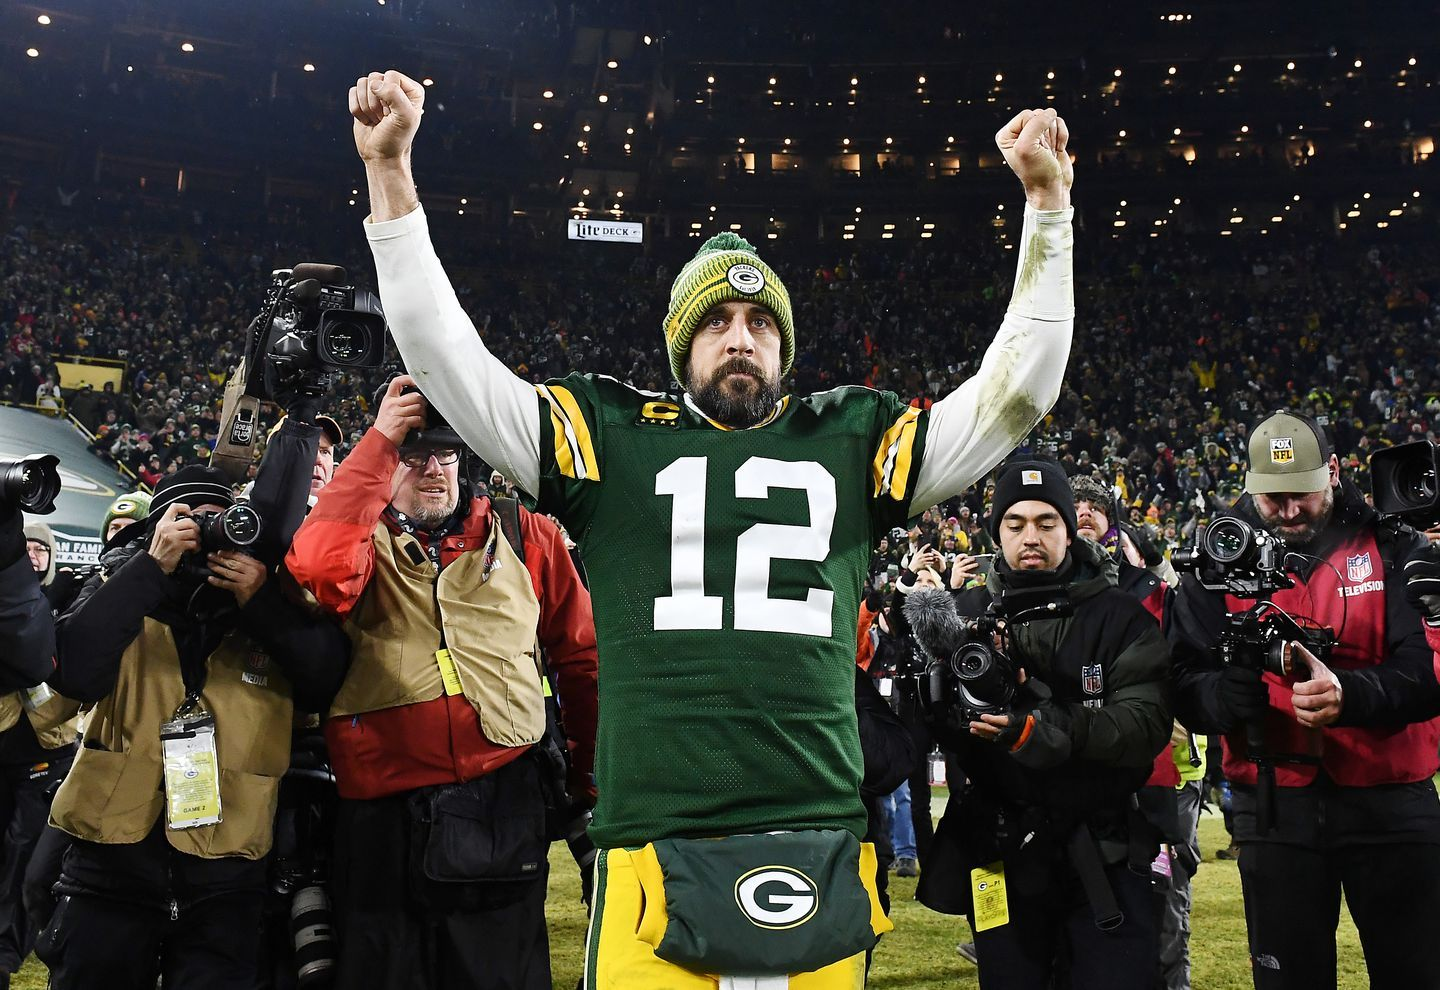 A Year Ago The Packers Appeared To Be Outdated Now They Look Like A Modern Nfl Prototype Life Strate In 2020 Aaron Rodgers Nfl Oakland Raiders Packers Vs Seahawks